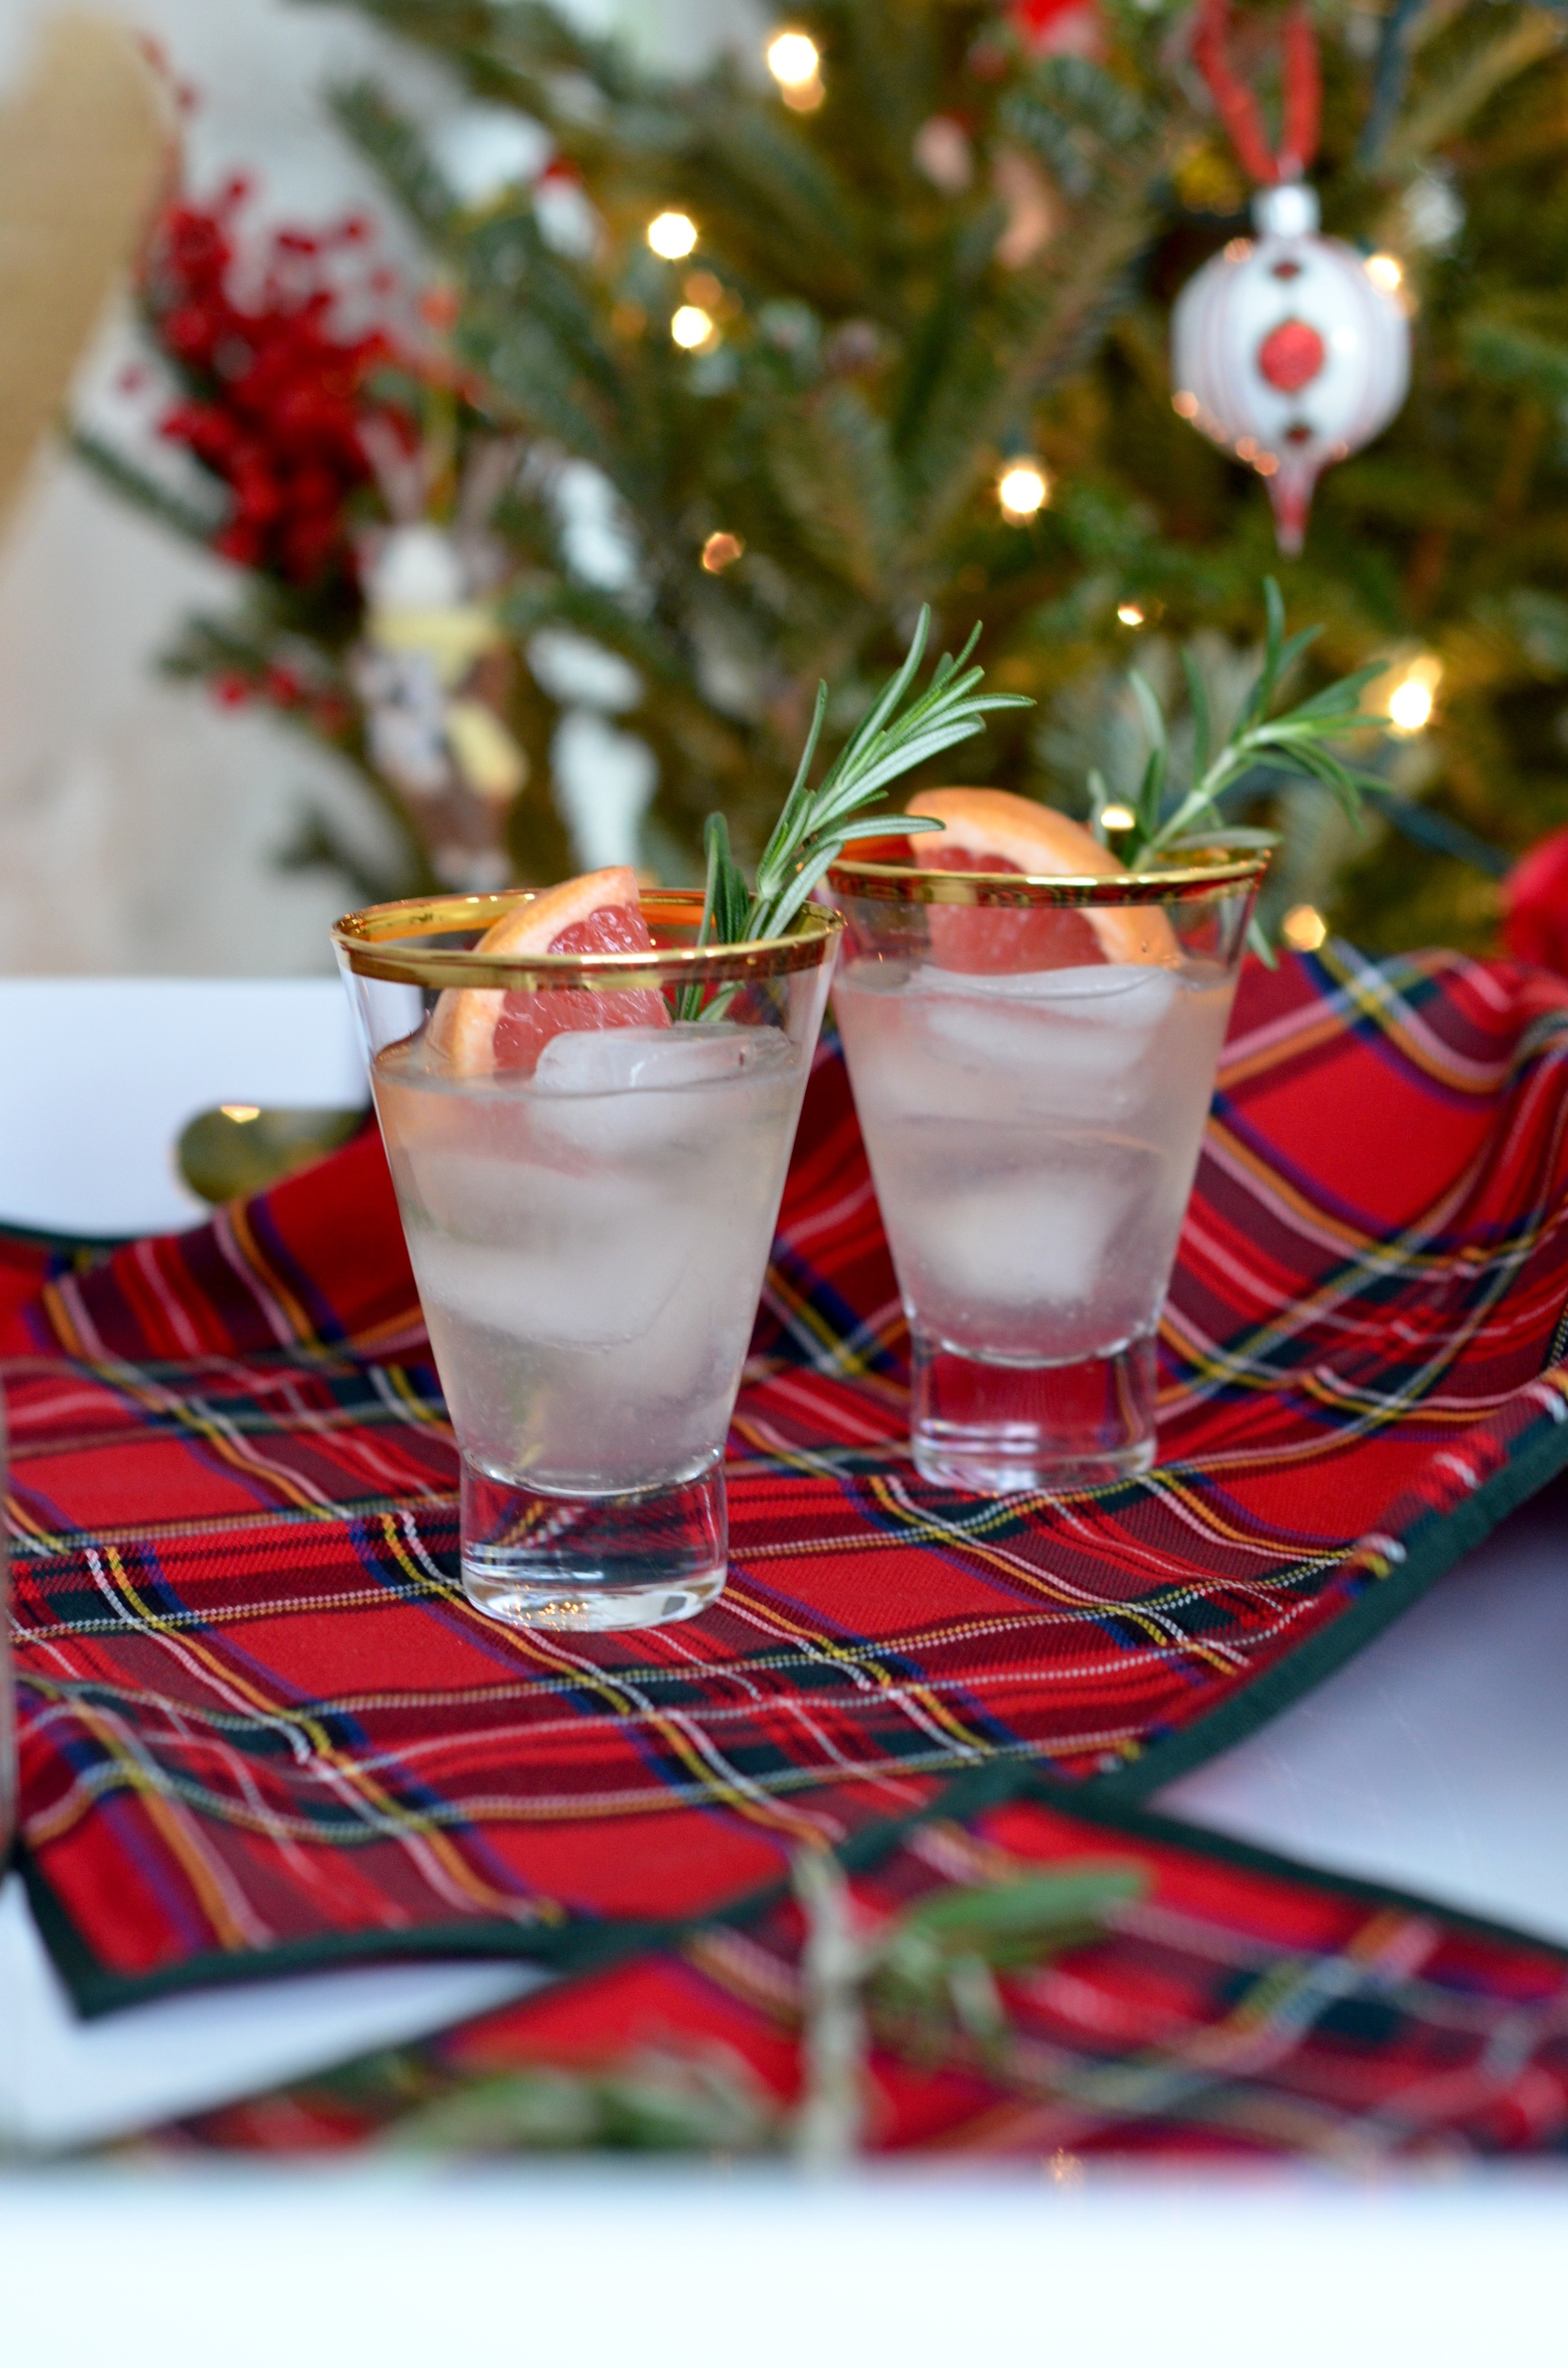 holiday cocktail recipe rosemerry pink grapefruit gin st germain